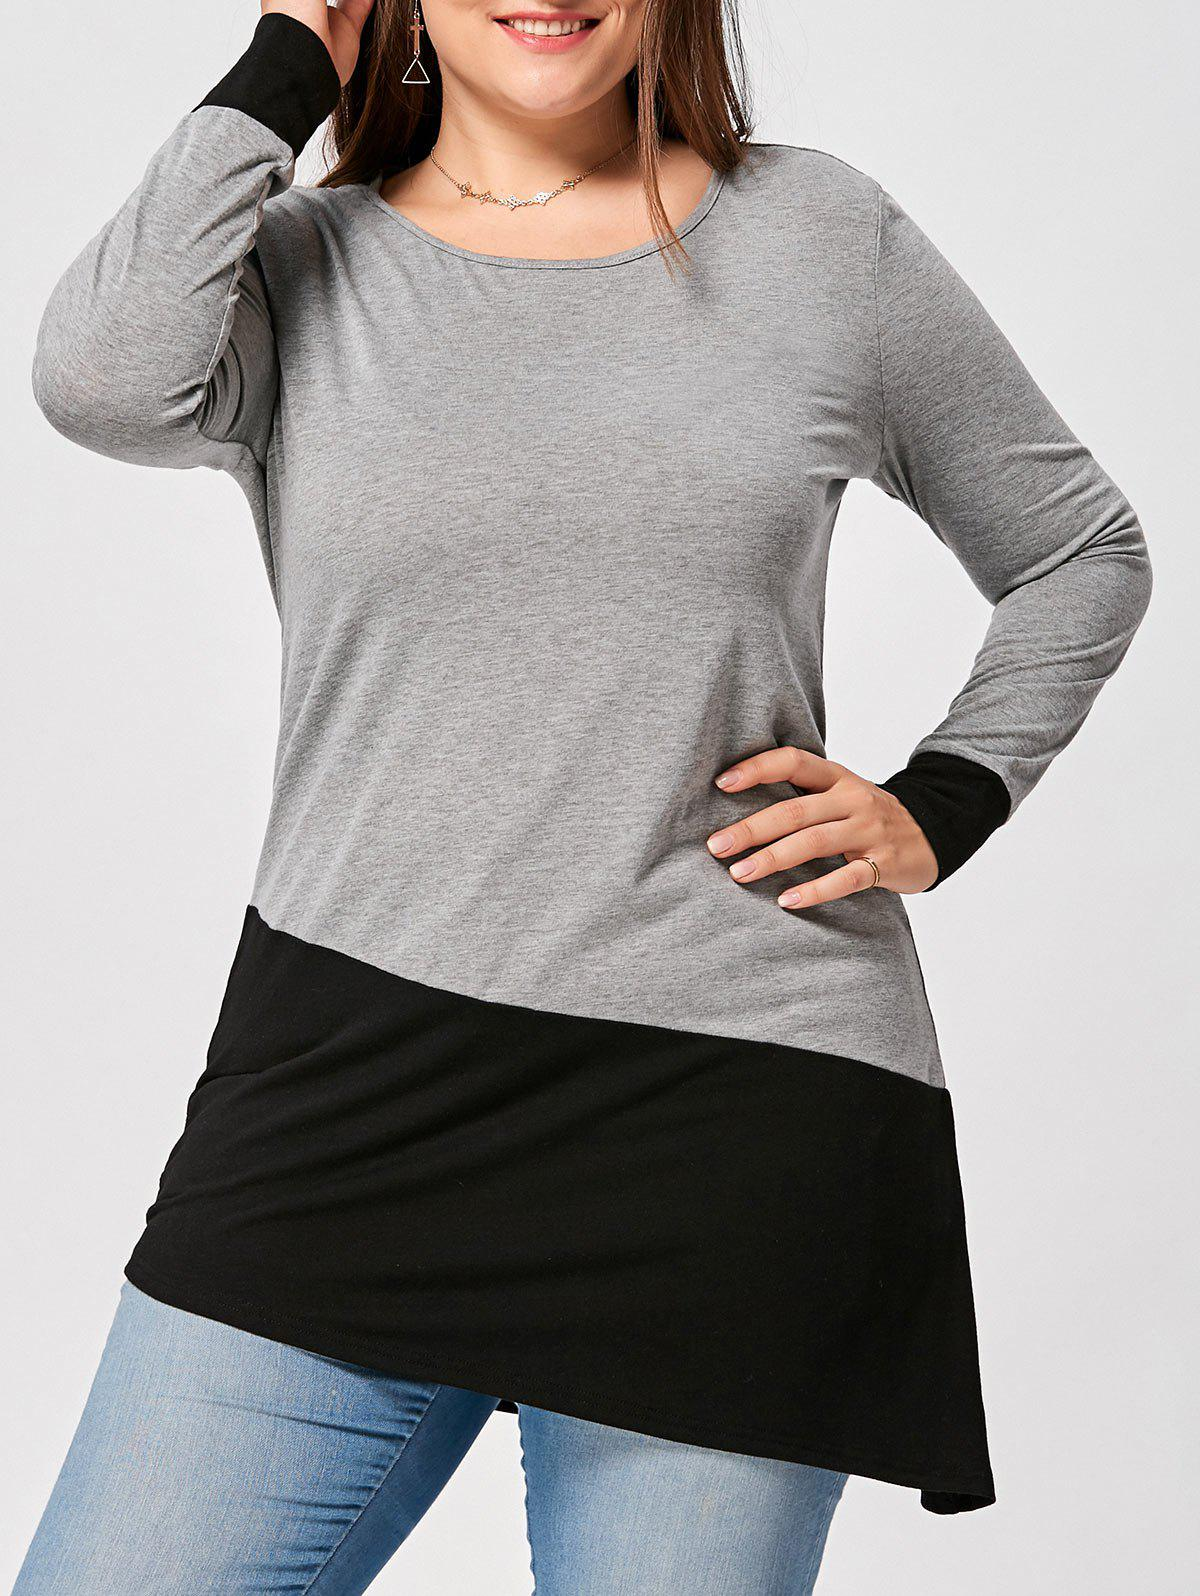 Plus Size Long Sleeve Two Tone Asymmetric TopWOMEN<br><br>Size: 5XL; Color: BLACK AND GREY; Material: Cotton,Polyester; Shirt Length: Long; Sleeve Length: Full; Collar: Round Neck; Style: Casual; Season: Fall,Spring; Pattern Type: Others; Weight: 0.3000kg; Package Contents: 1 x T-shirt;